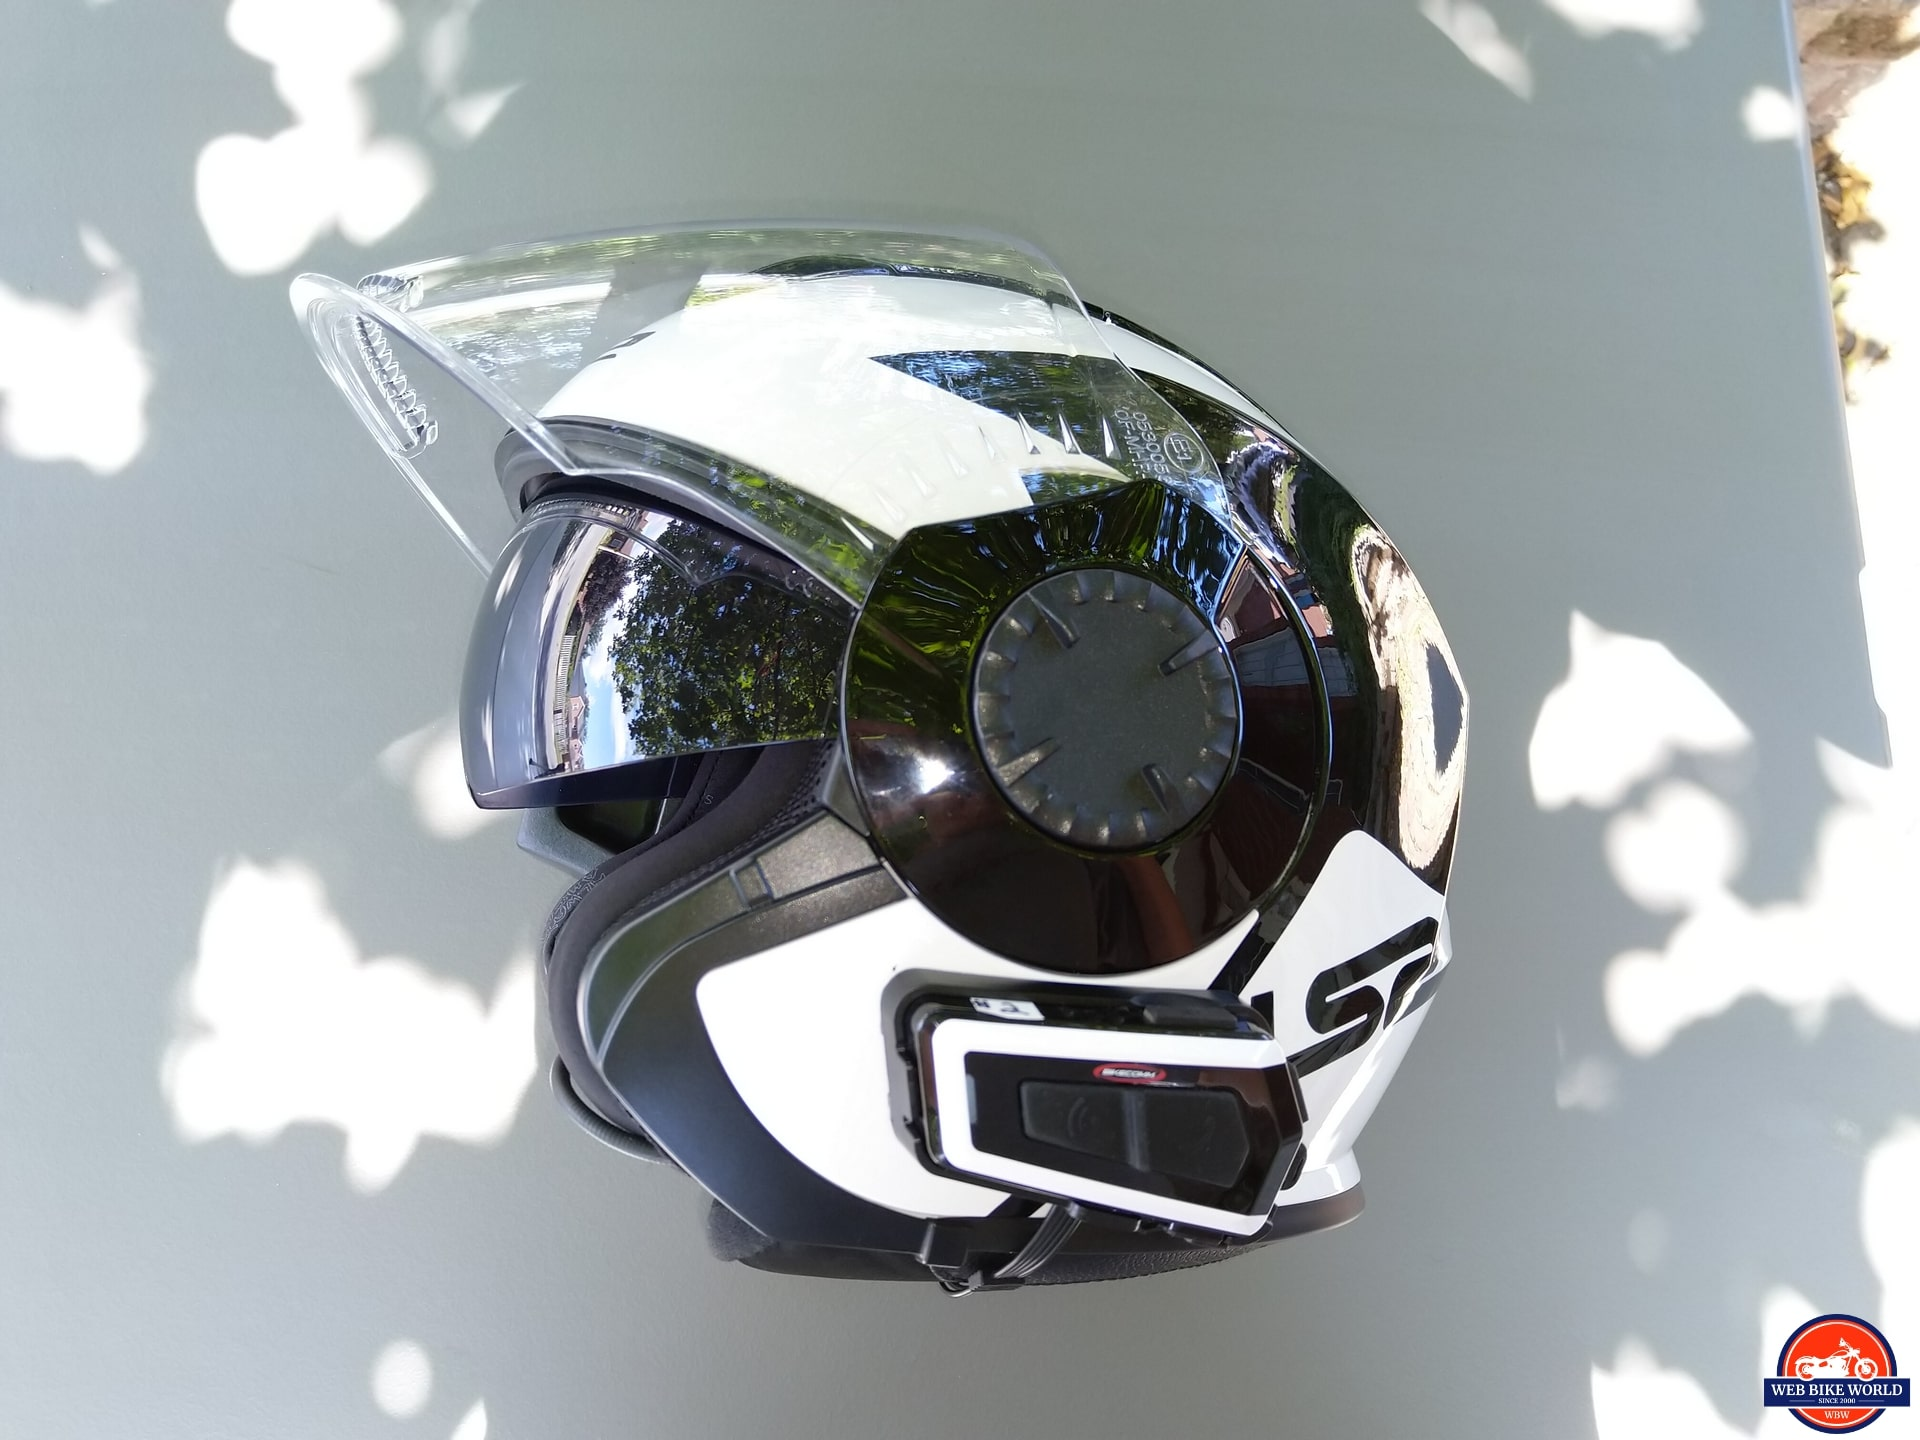 LS2 VERSO Mobile Helmet full-face visor and sun visor